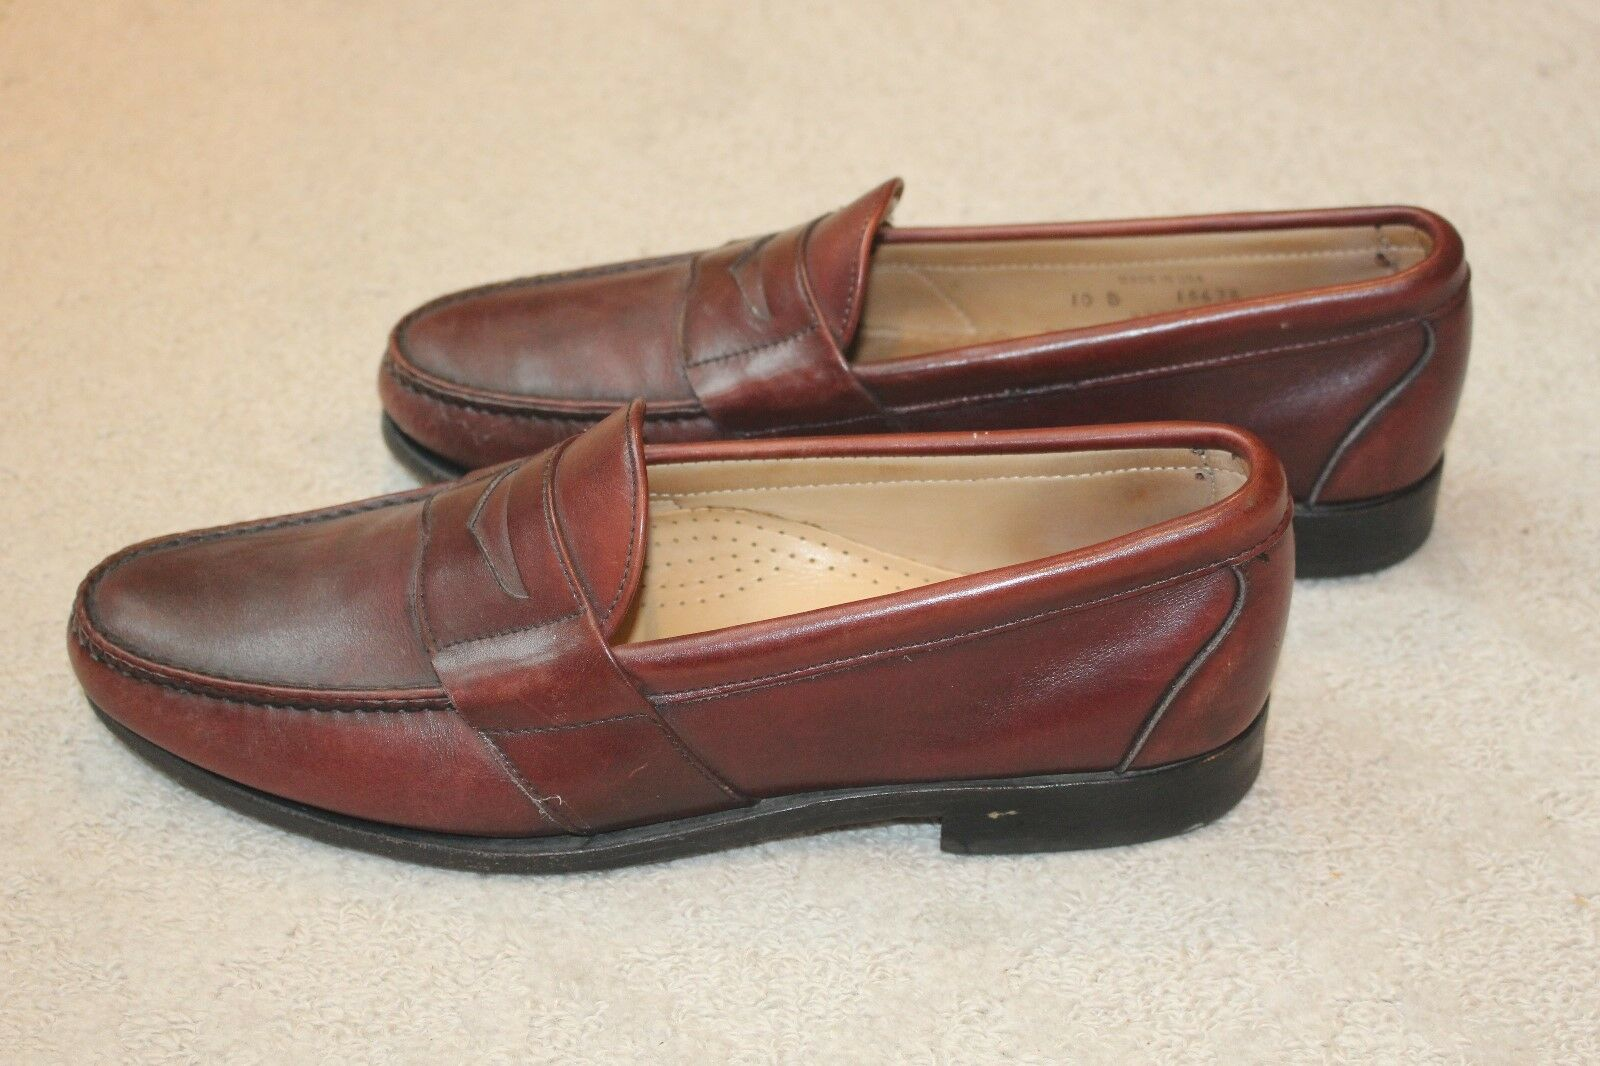 Allen Edmonds Cameron Burgandy Oxblood Penny Loafers Slip On Size 10 B Leather